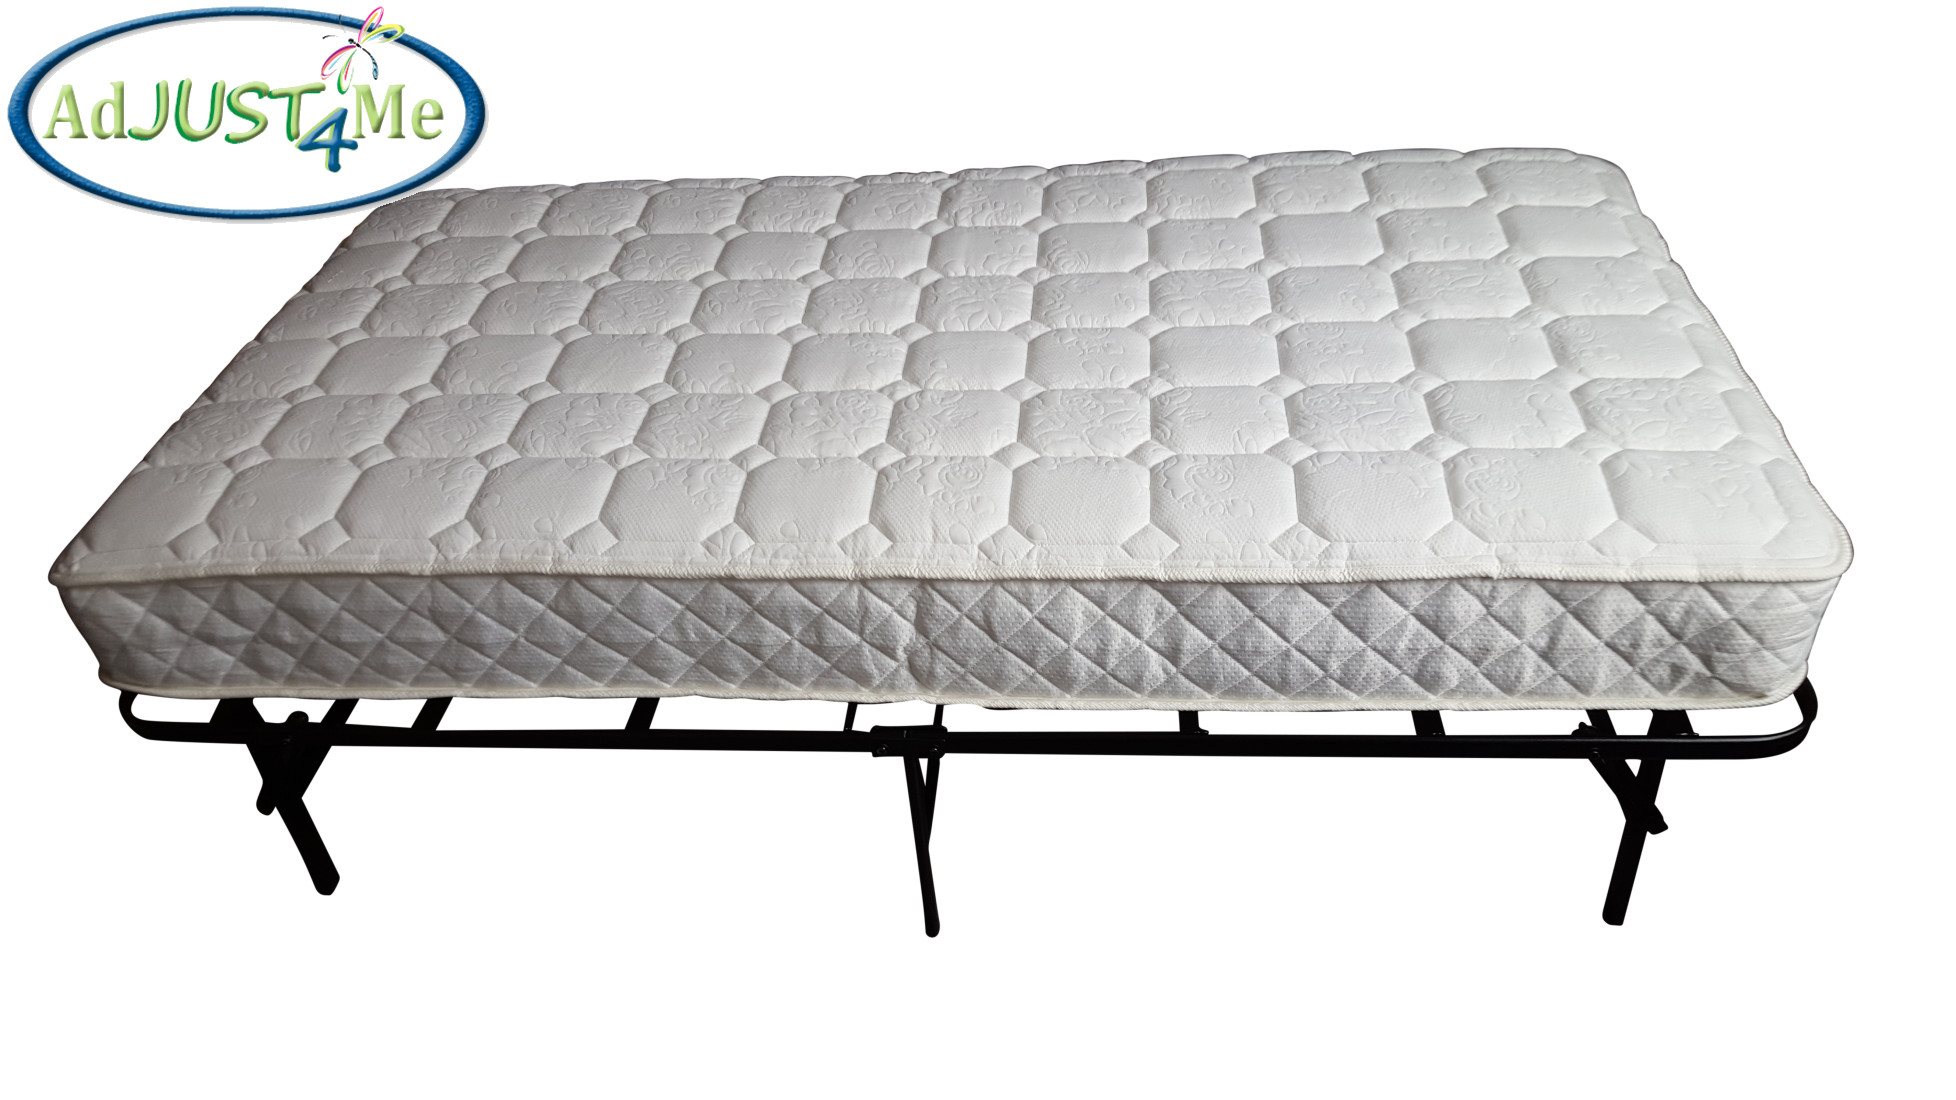 bed frame and mattress combo size bed frame and mattress combo by adjust4me ebay 18087